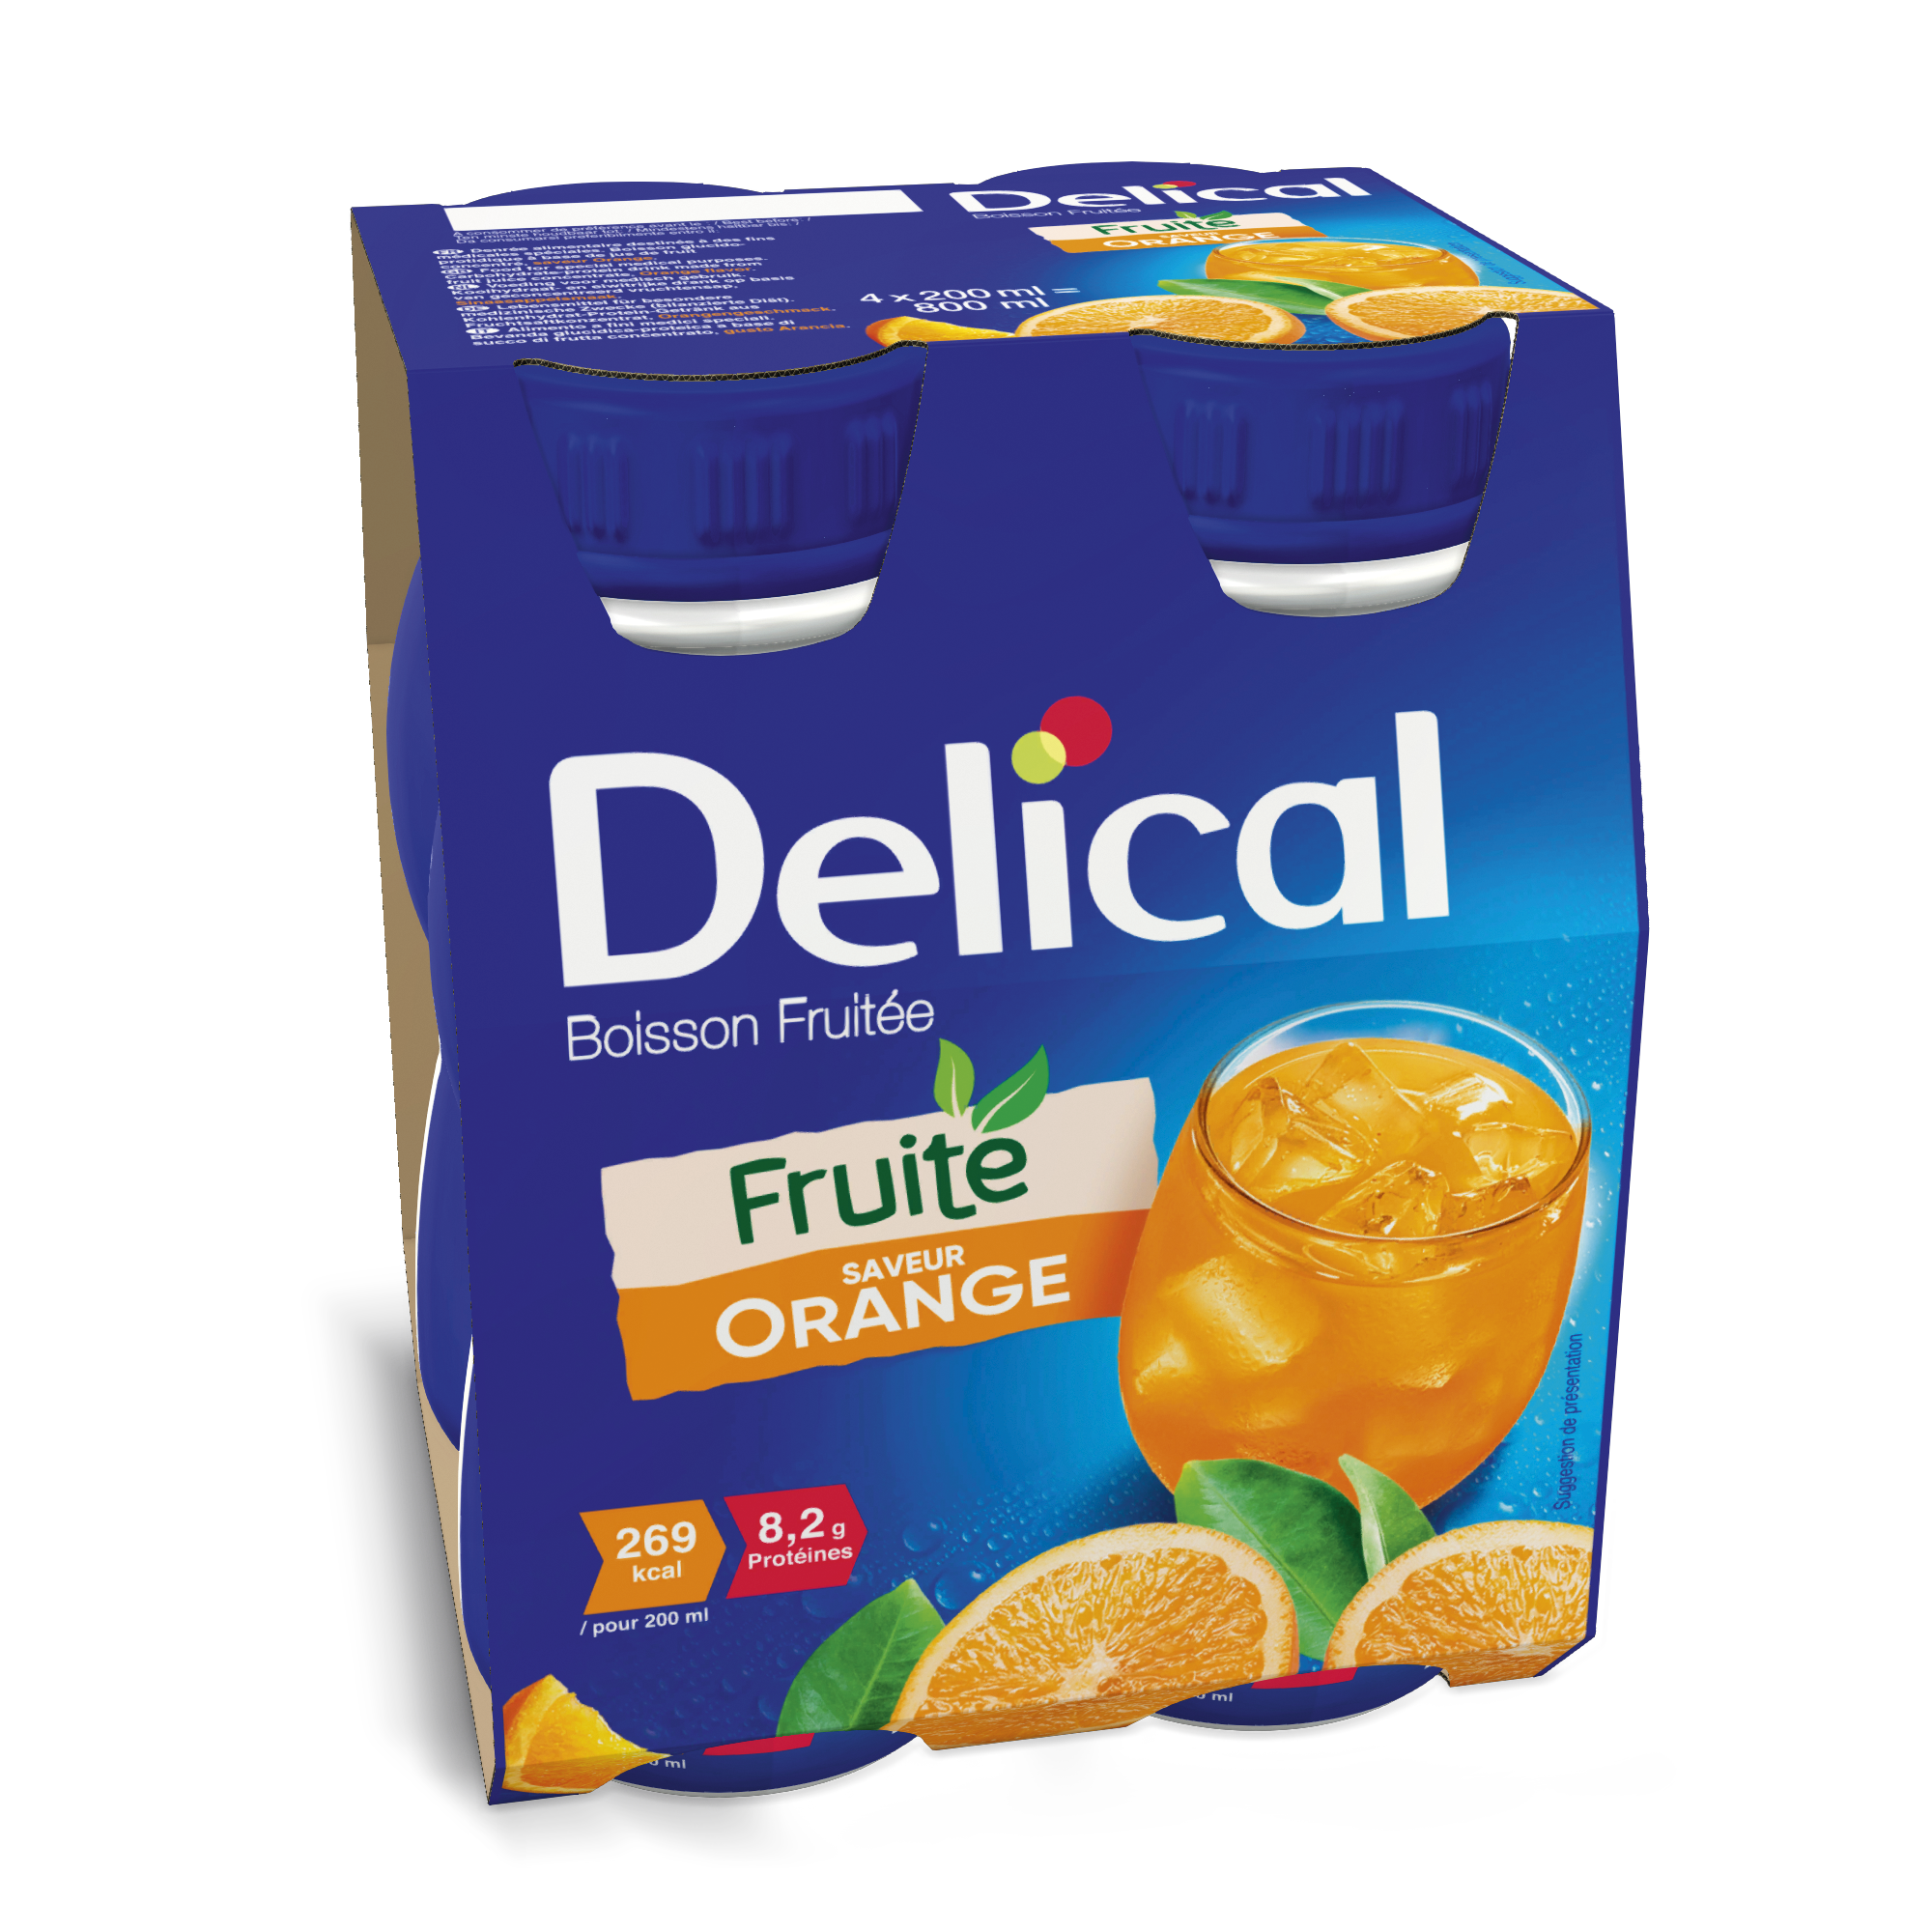 Delical Boisson Fruitee Orange